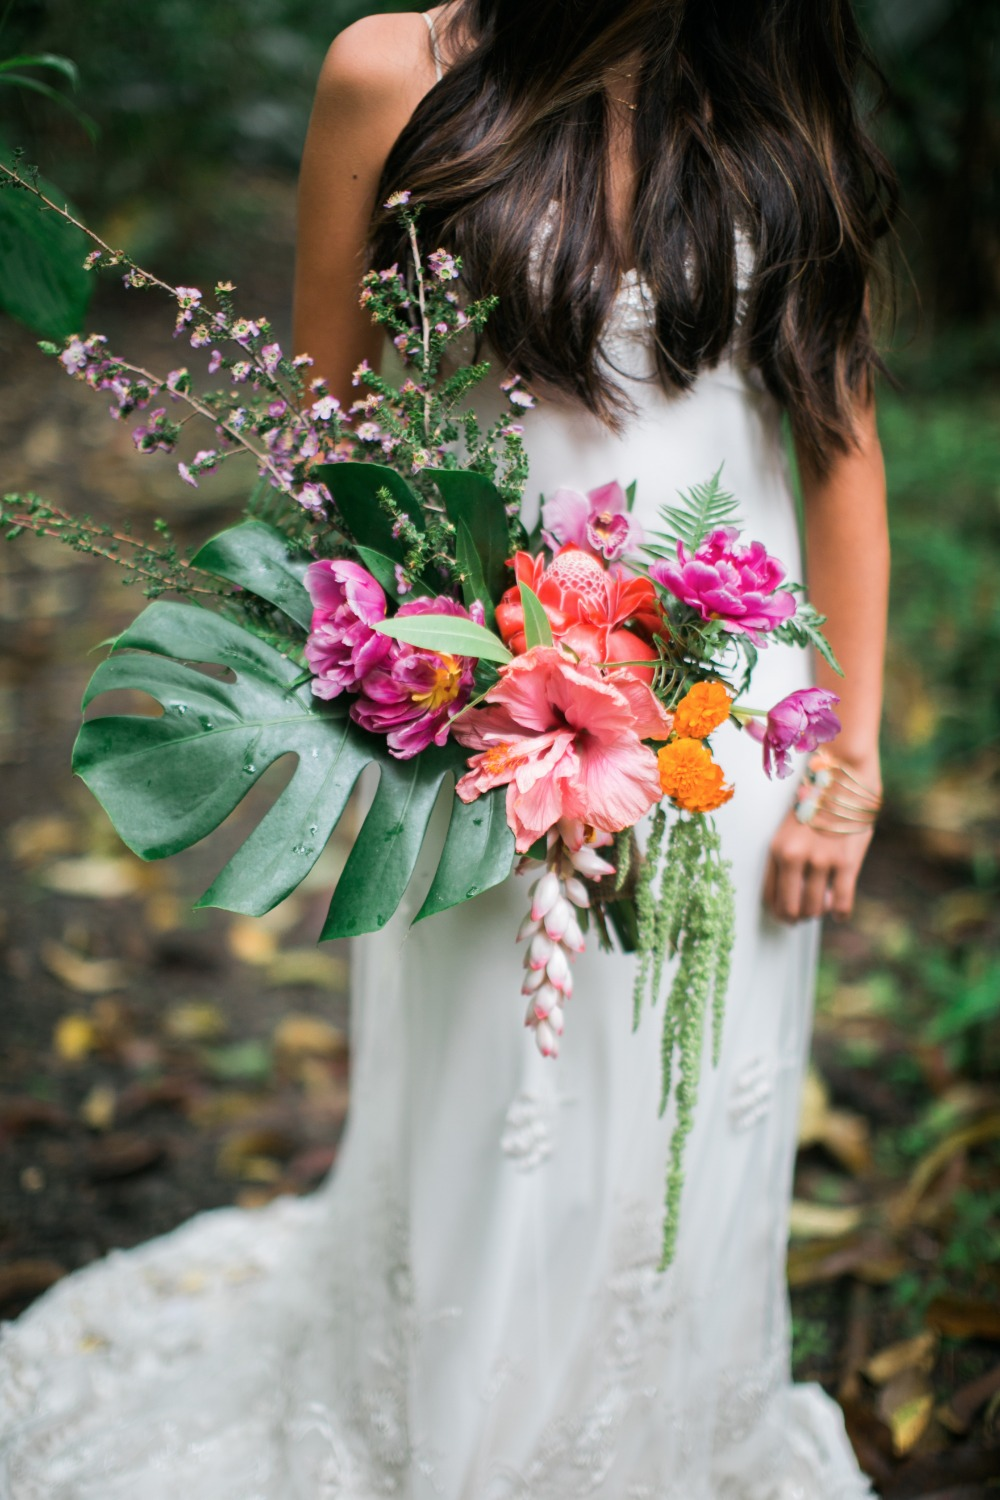 Stunning Hawaiian wedding bouquet